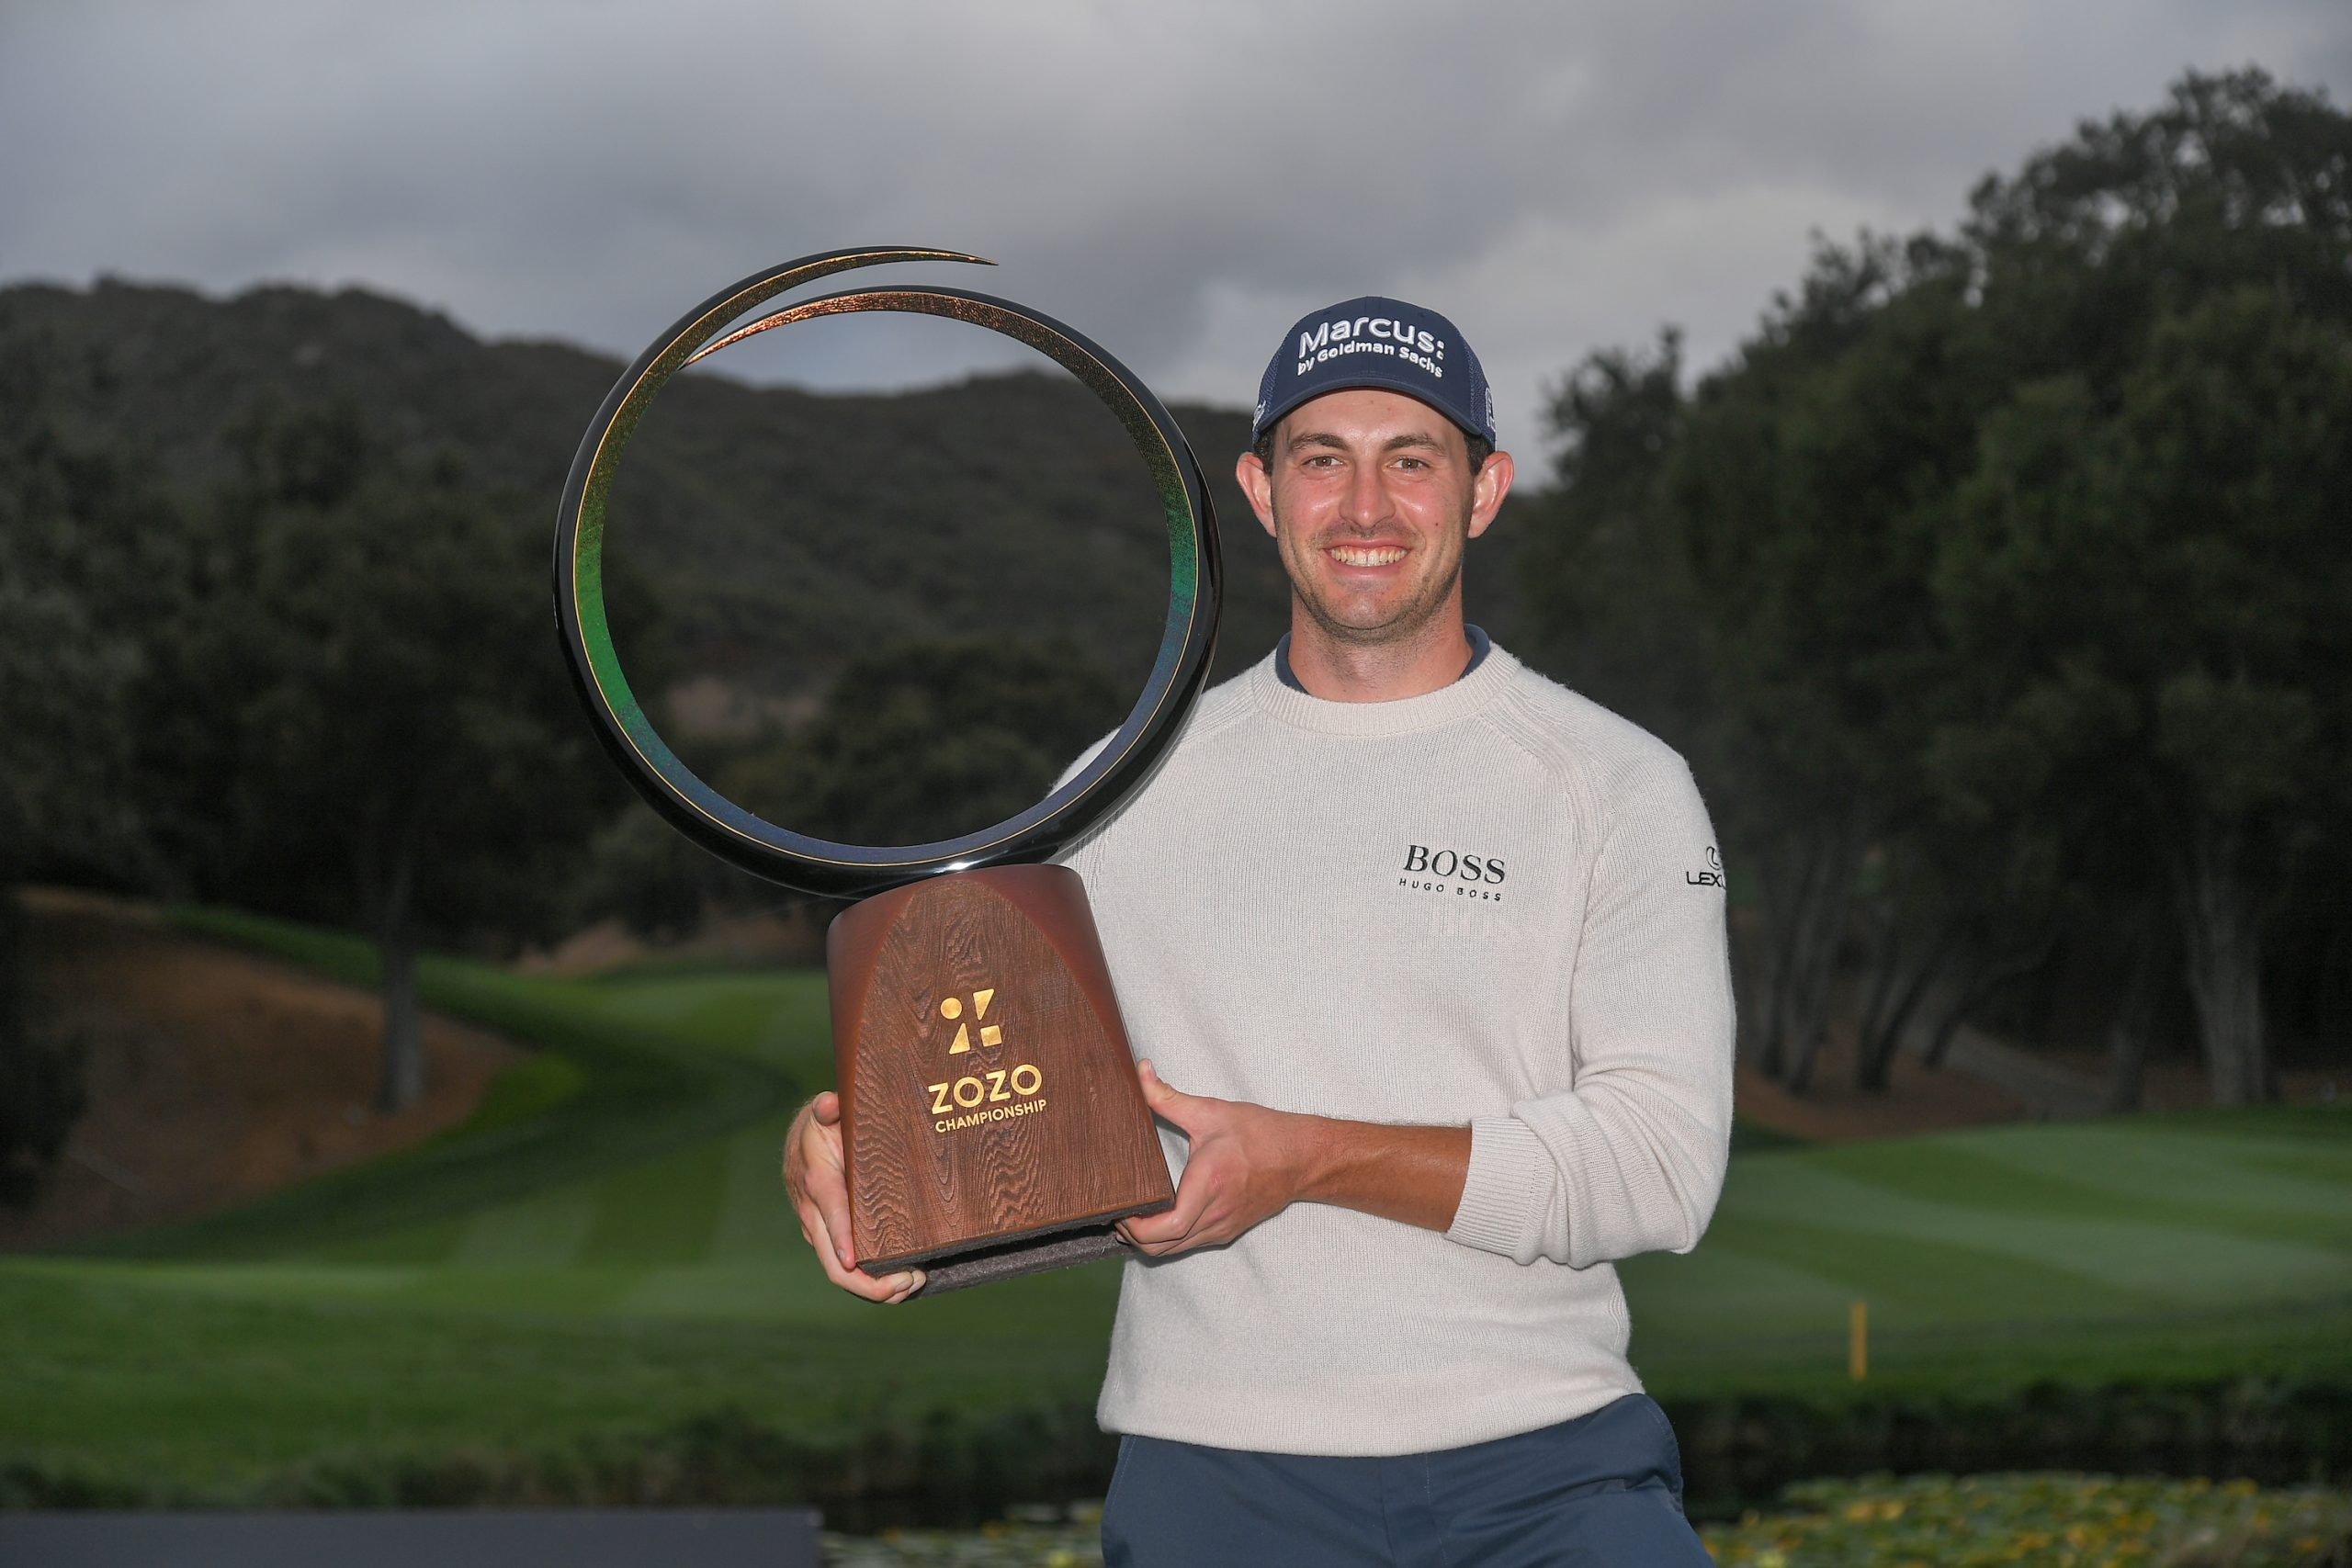 Cantlay rallies to win and end 16-month drought at Zozo; Woods way behind